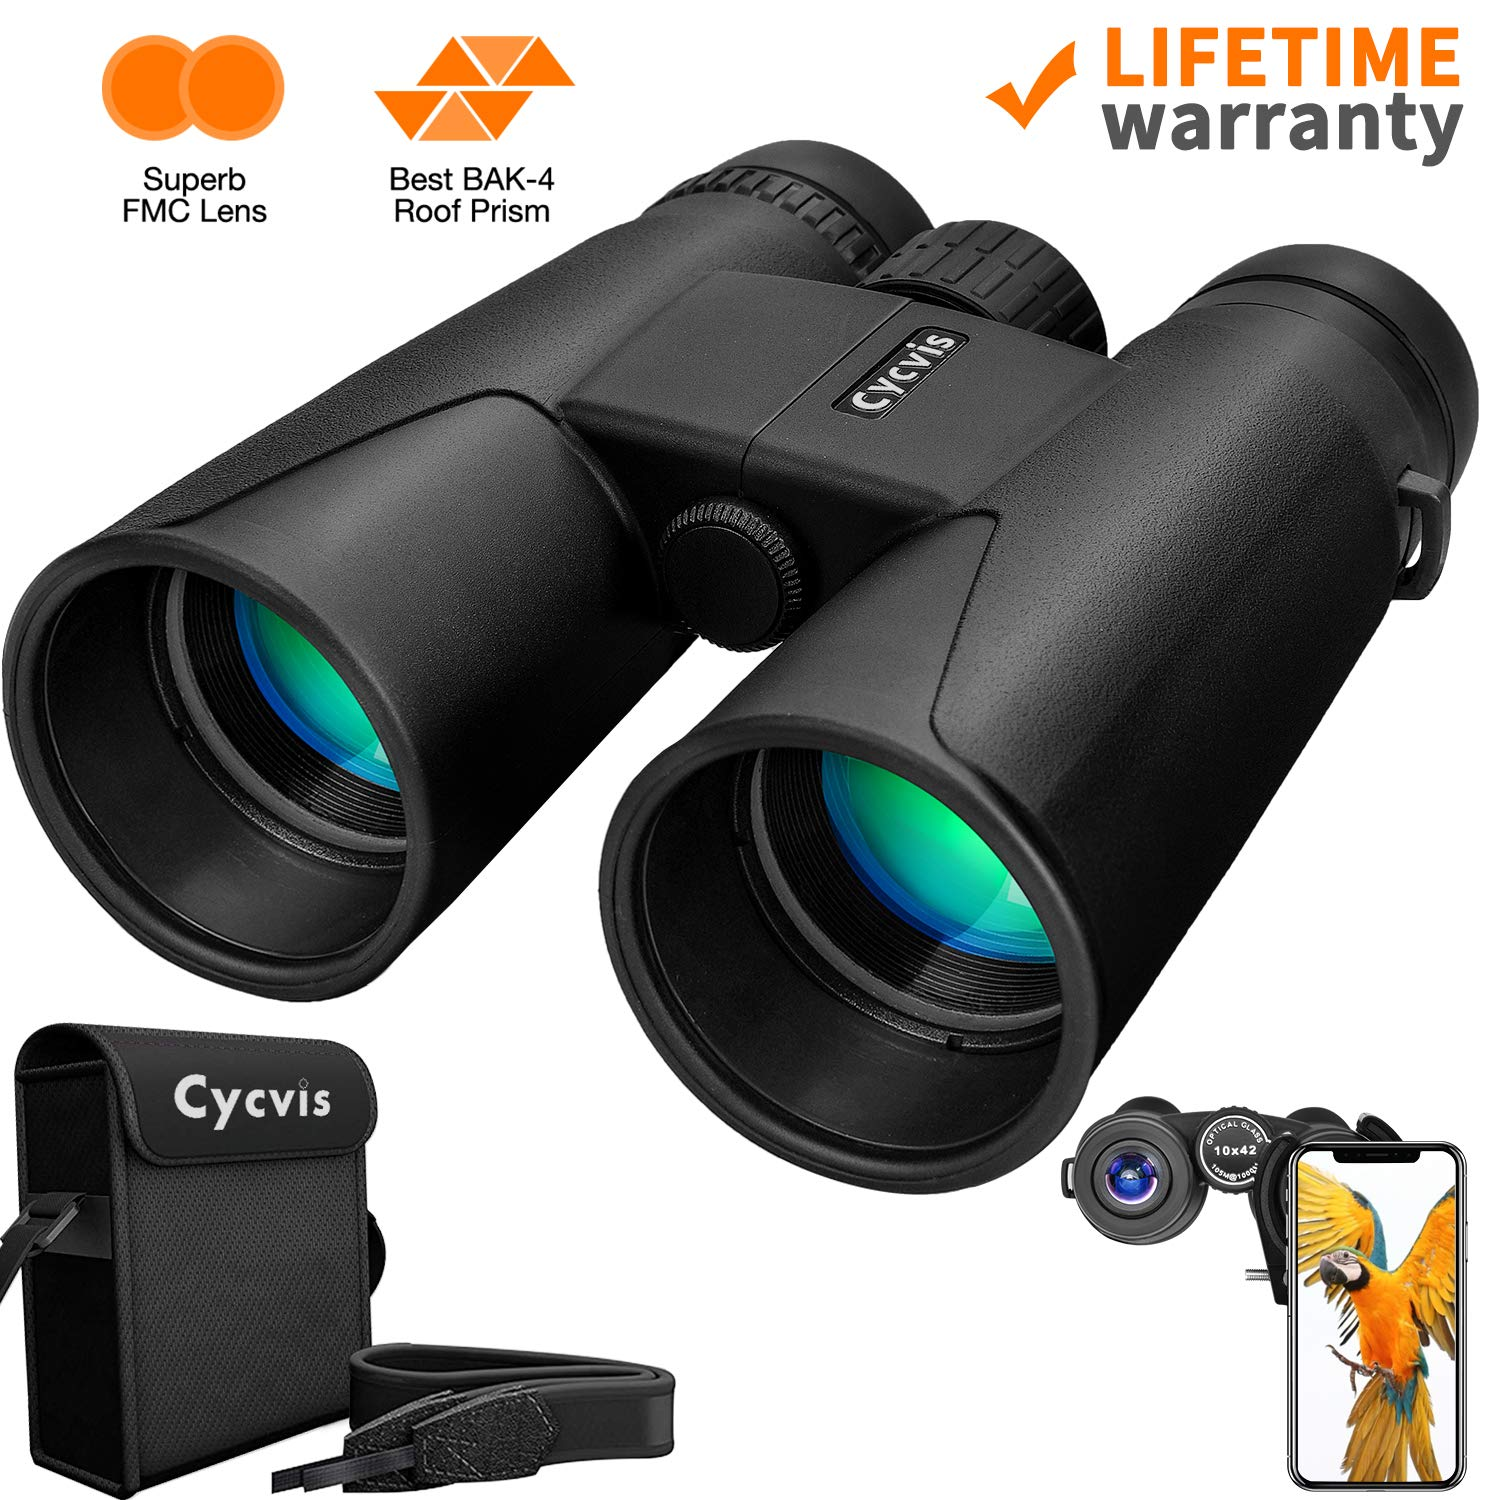 10x42 Roof Prism Binoculars for Adults - Professional HD Binoculars for Birds Watching Travel Stargazing Concert with Clear Weak Light Vision - BAK4 Prism FMC Lens with Strap Carrying Bag (1.1 pounds) by Cycvis